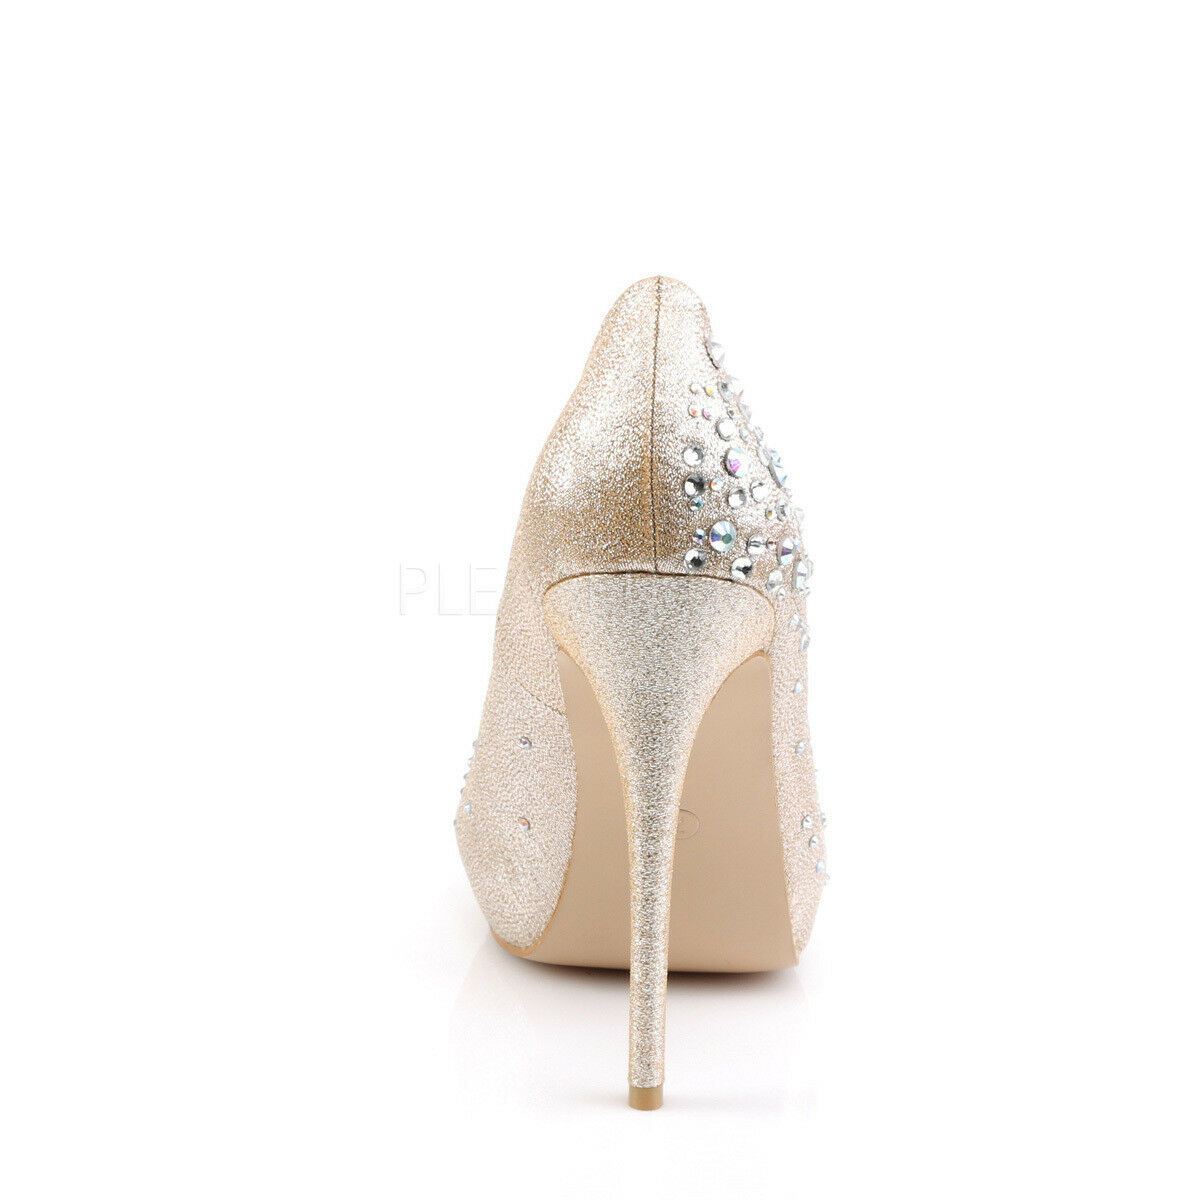 Heiress-22R sexy High High High Heels Peep Toe Pumps hautfarben mit Glitzersteinchen Gr 35 039313